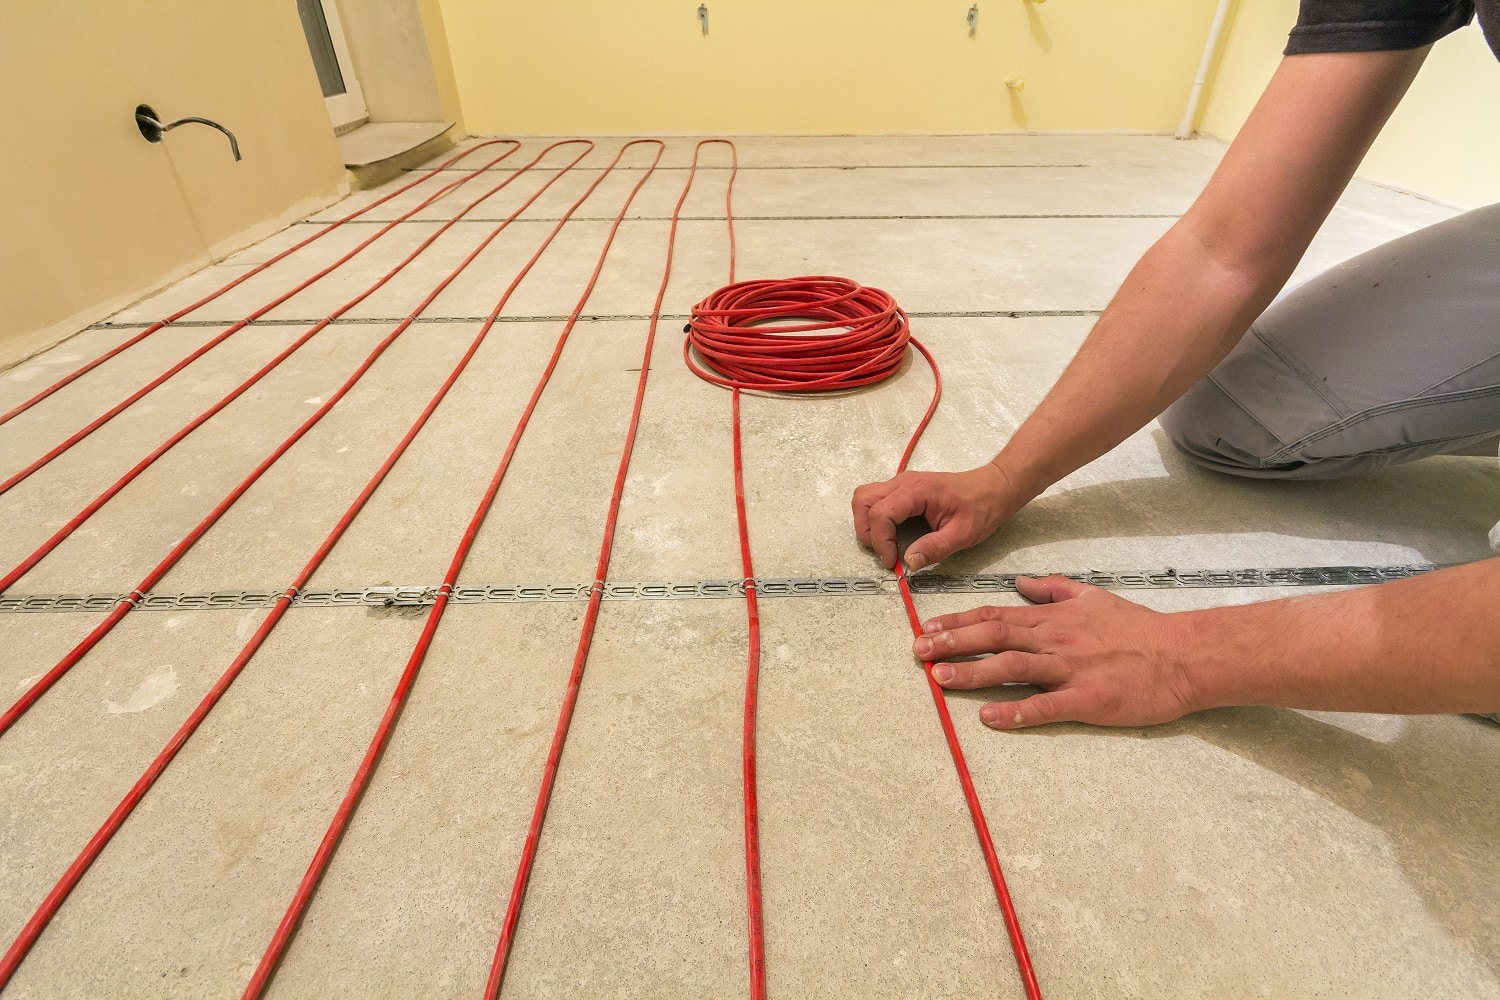 Electrician installing heating red electrical cable wire on cement floor in unfinished room. Renovation and construction, comfortable warm home concept.